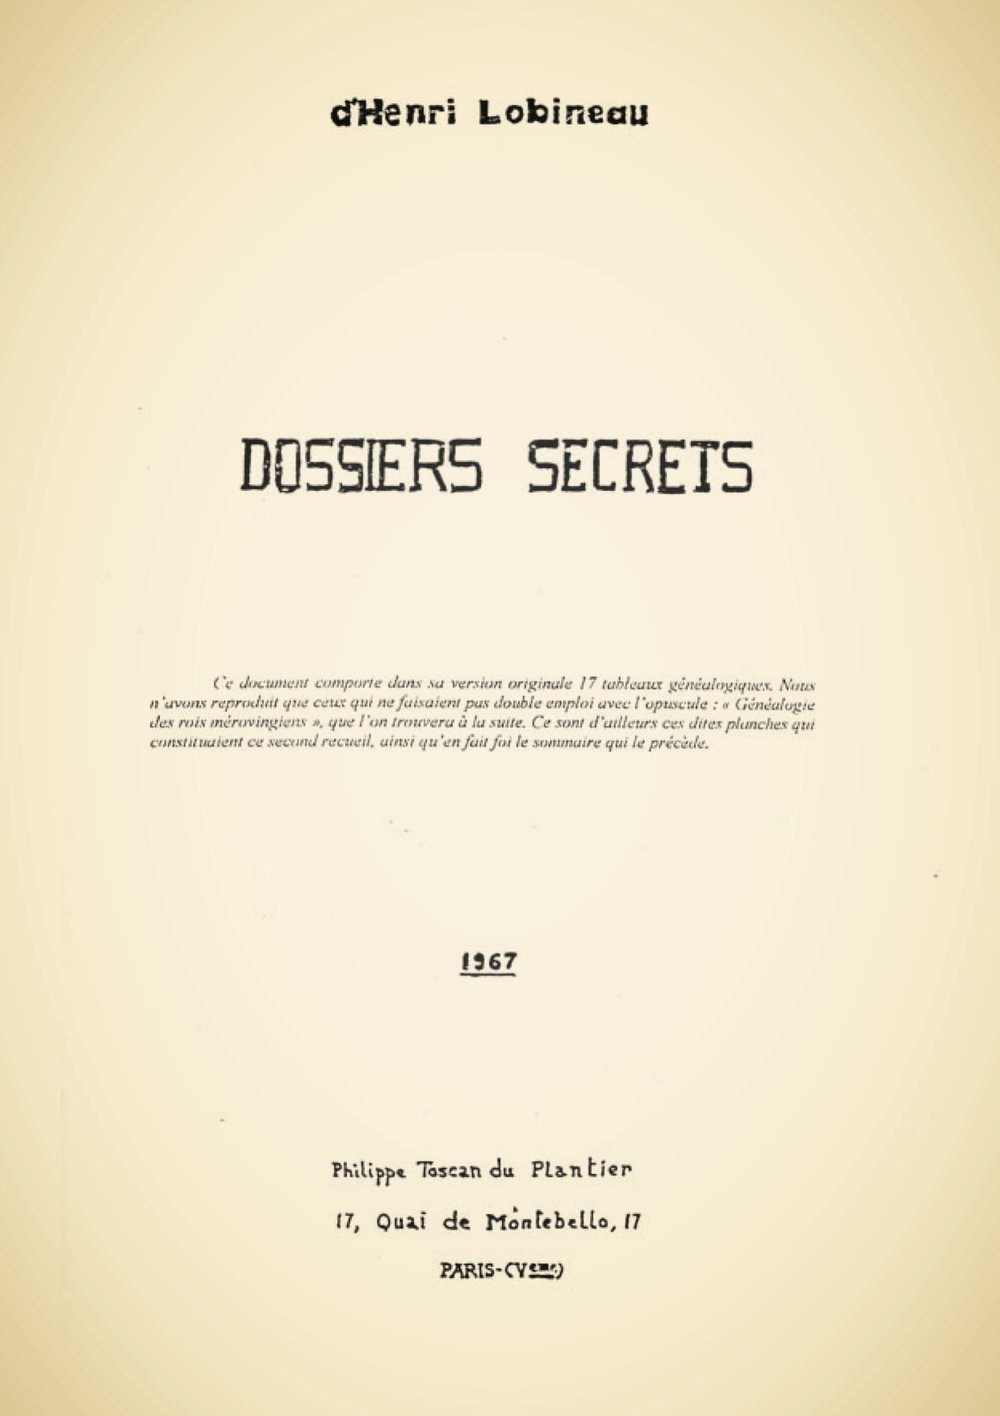 The cover page of  Dossiers Secrets d'Henri Lobineau , via  Just Some Info